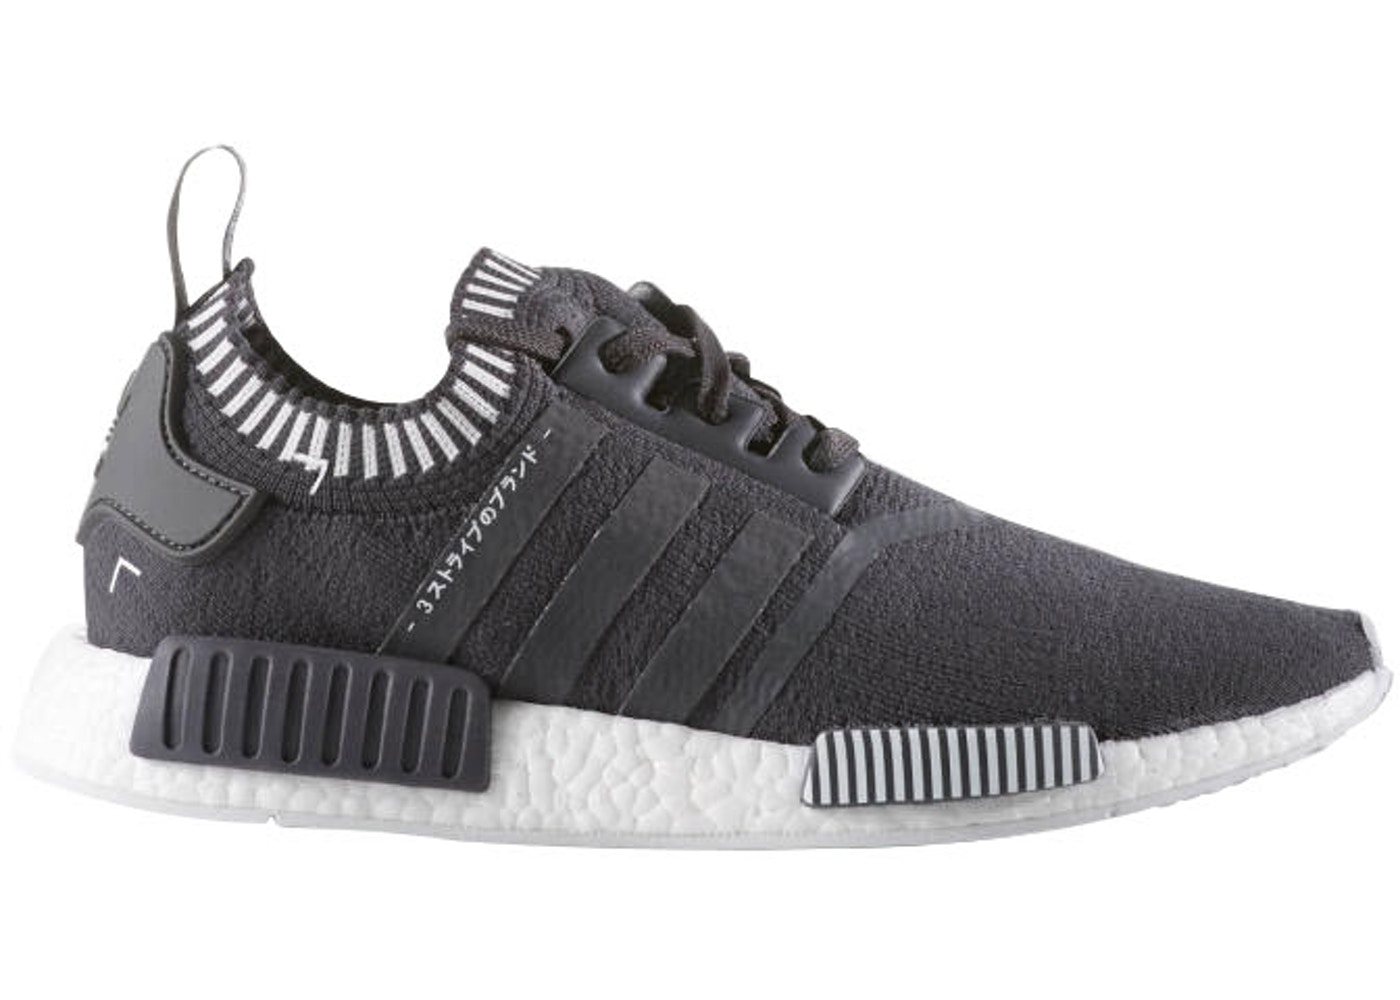 adidas NMD R1 Japan Boost Grey - S81849 0510b965b3